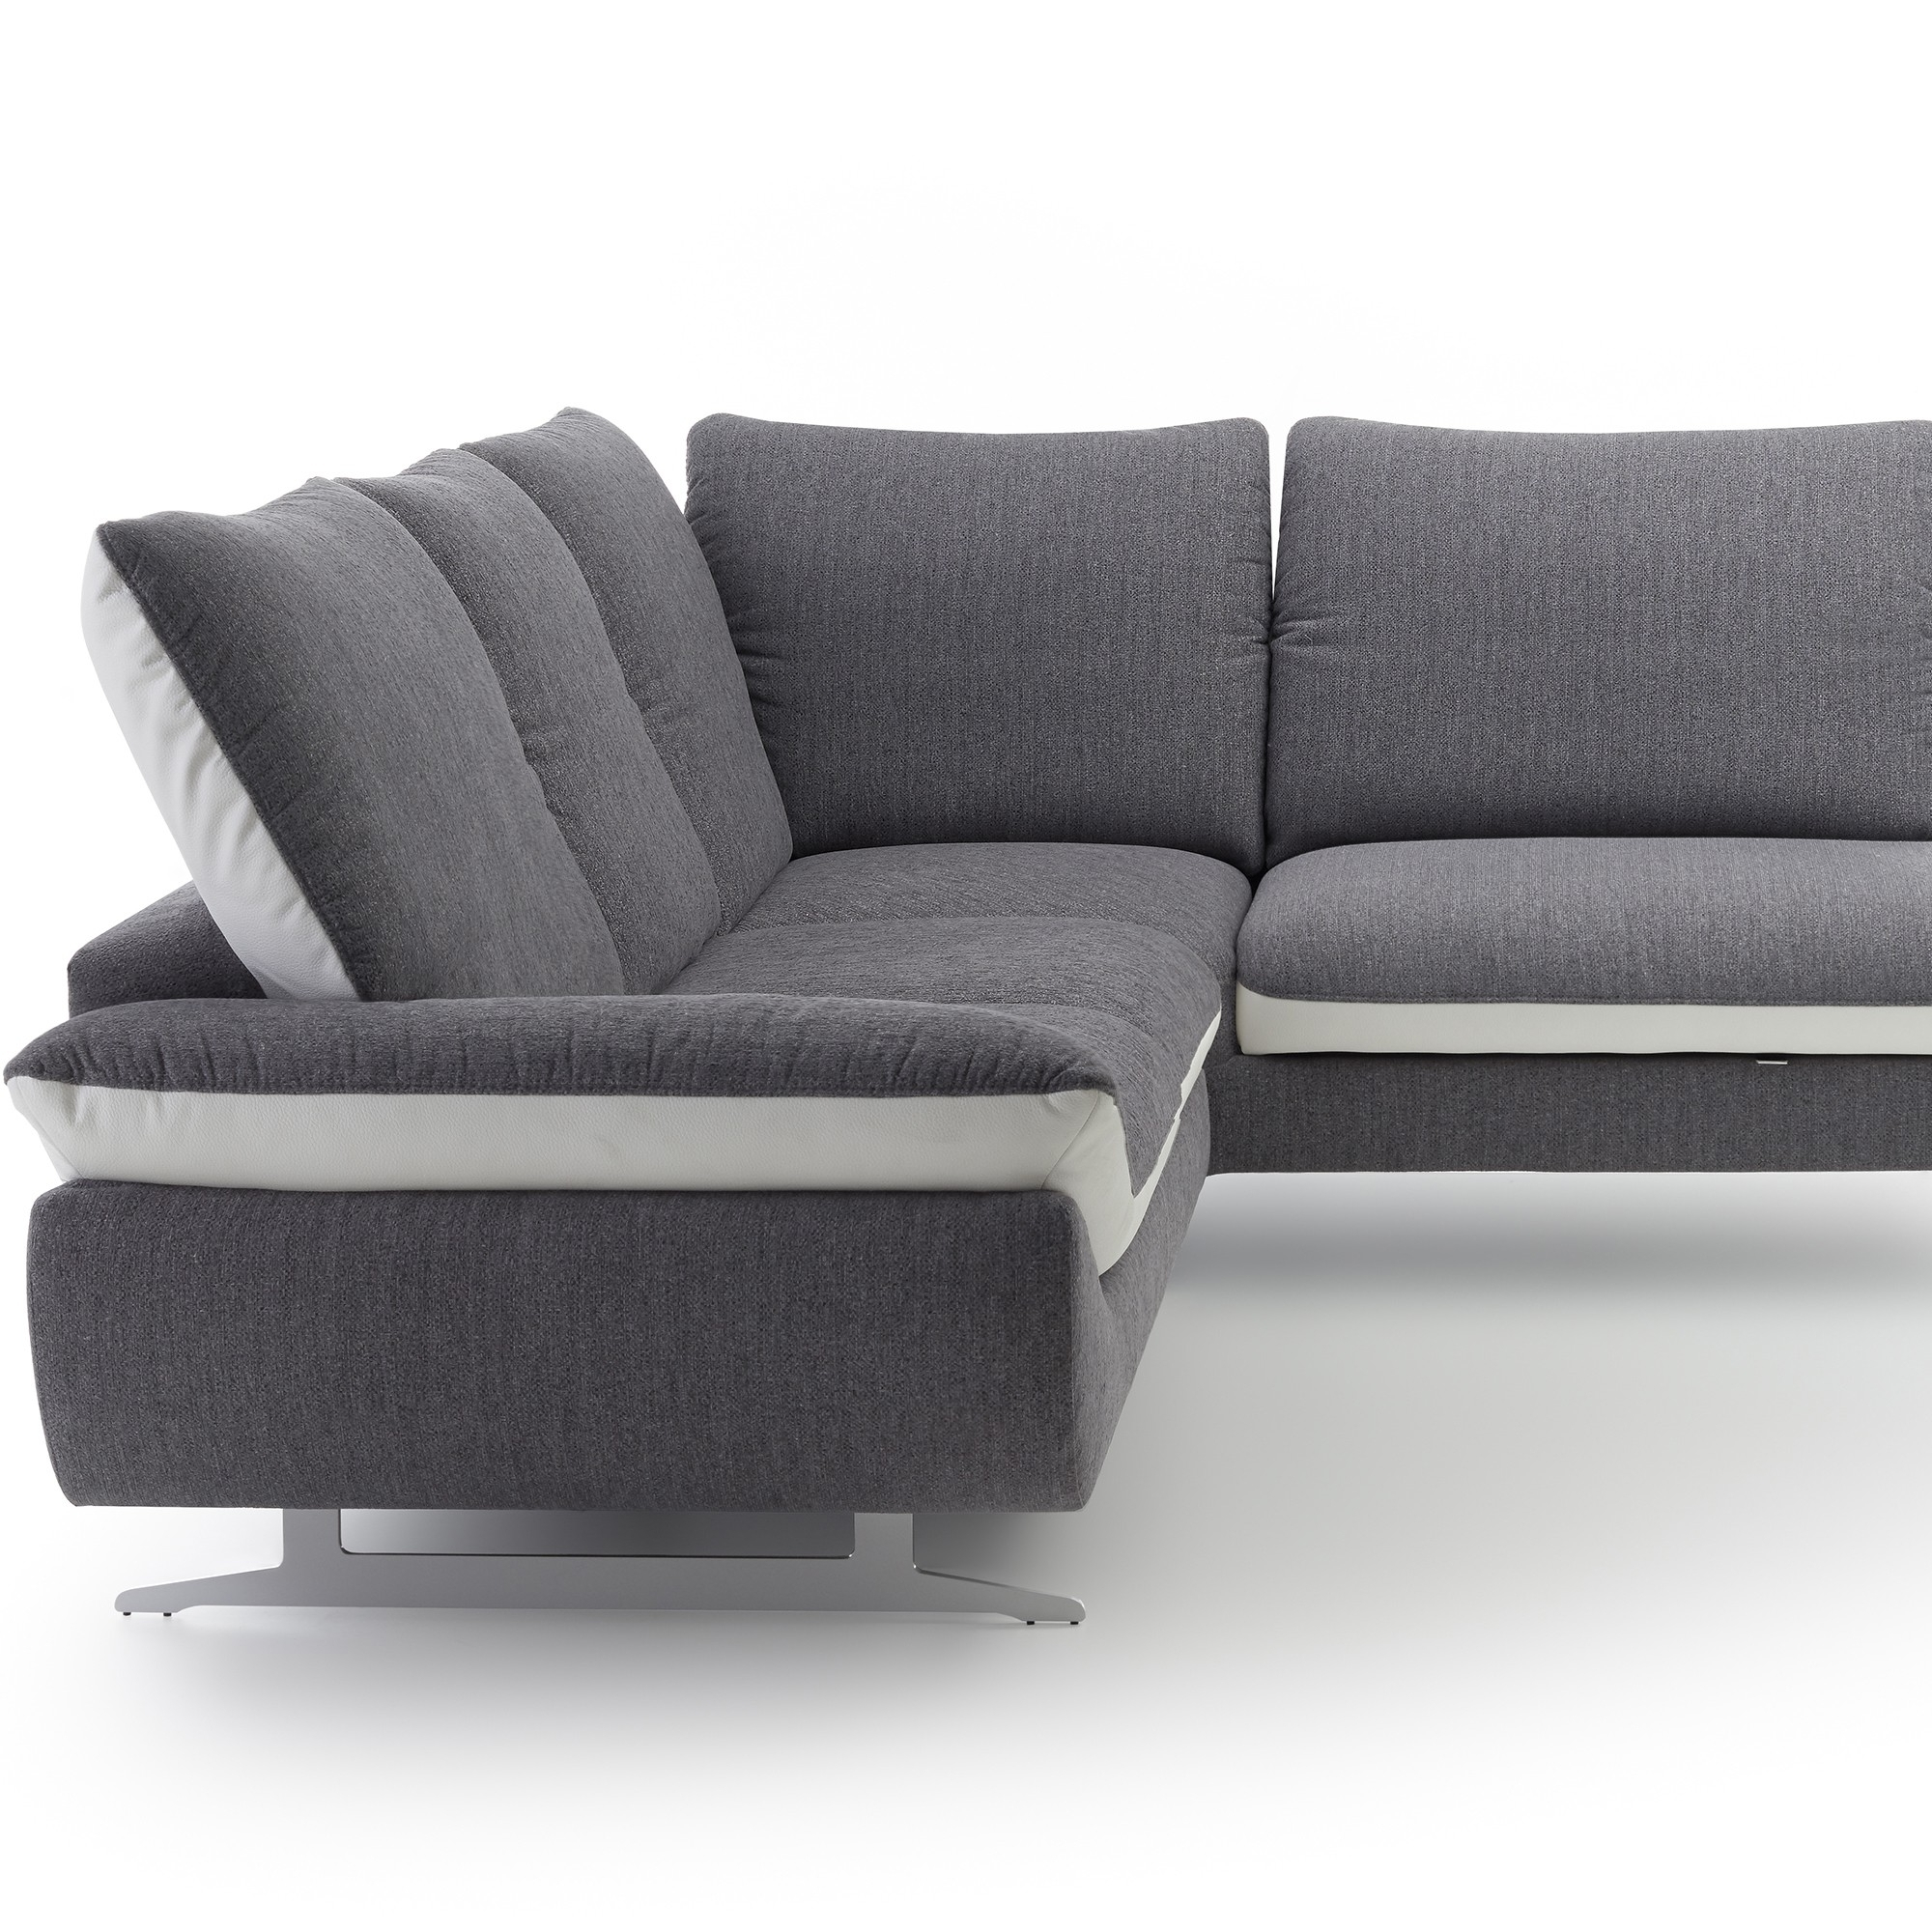 Top 20 Of Trinidad And Tobago Sectional Sofas With Regard To Trinidad And Tobago Sectional Sofas (Image 8 of 10)